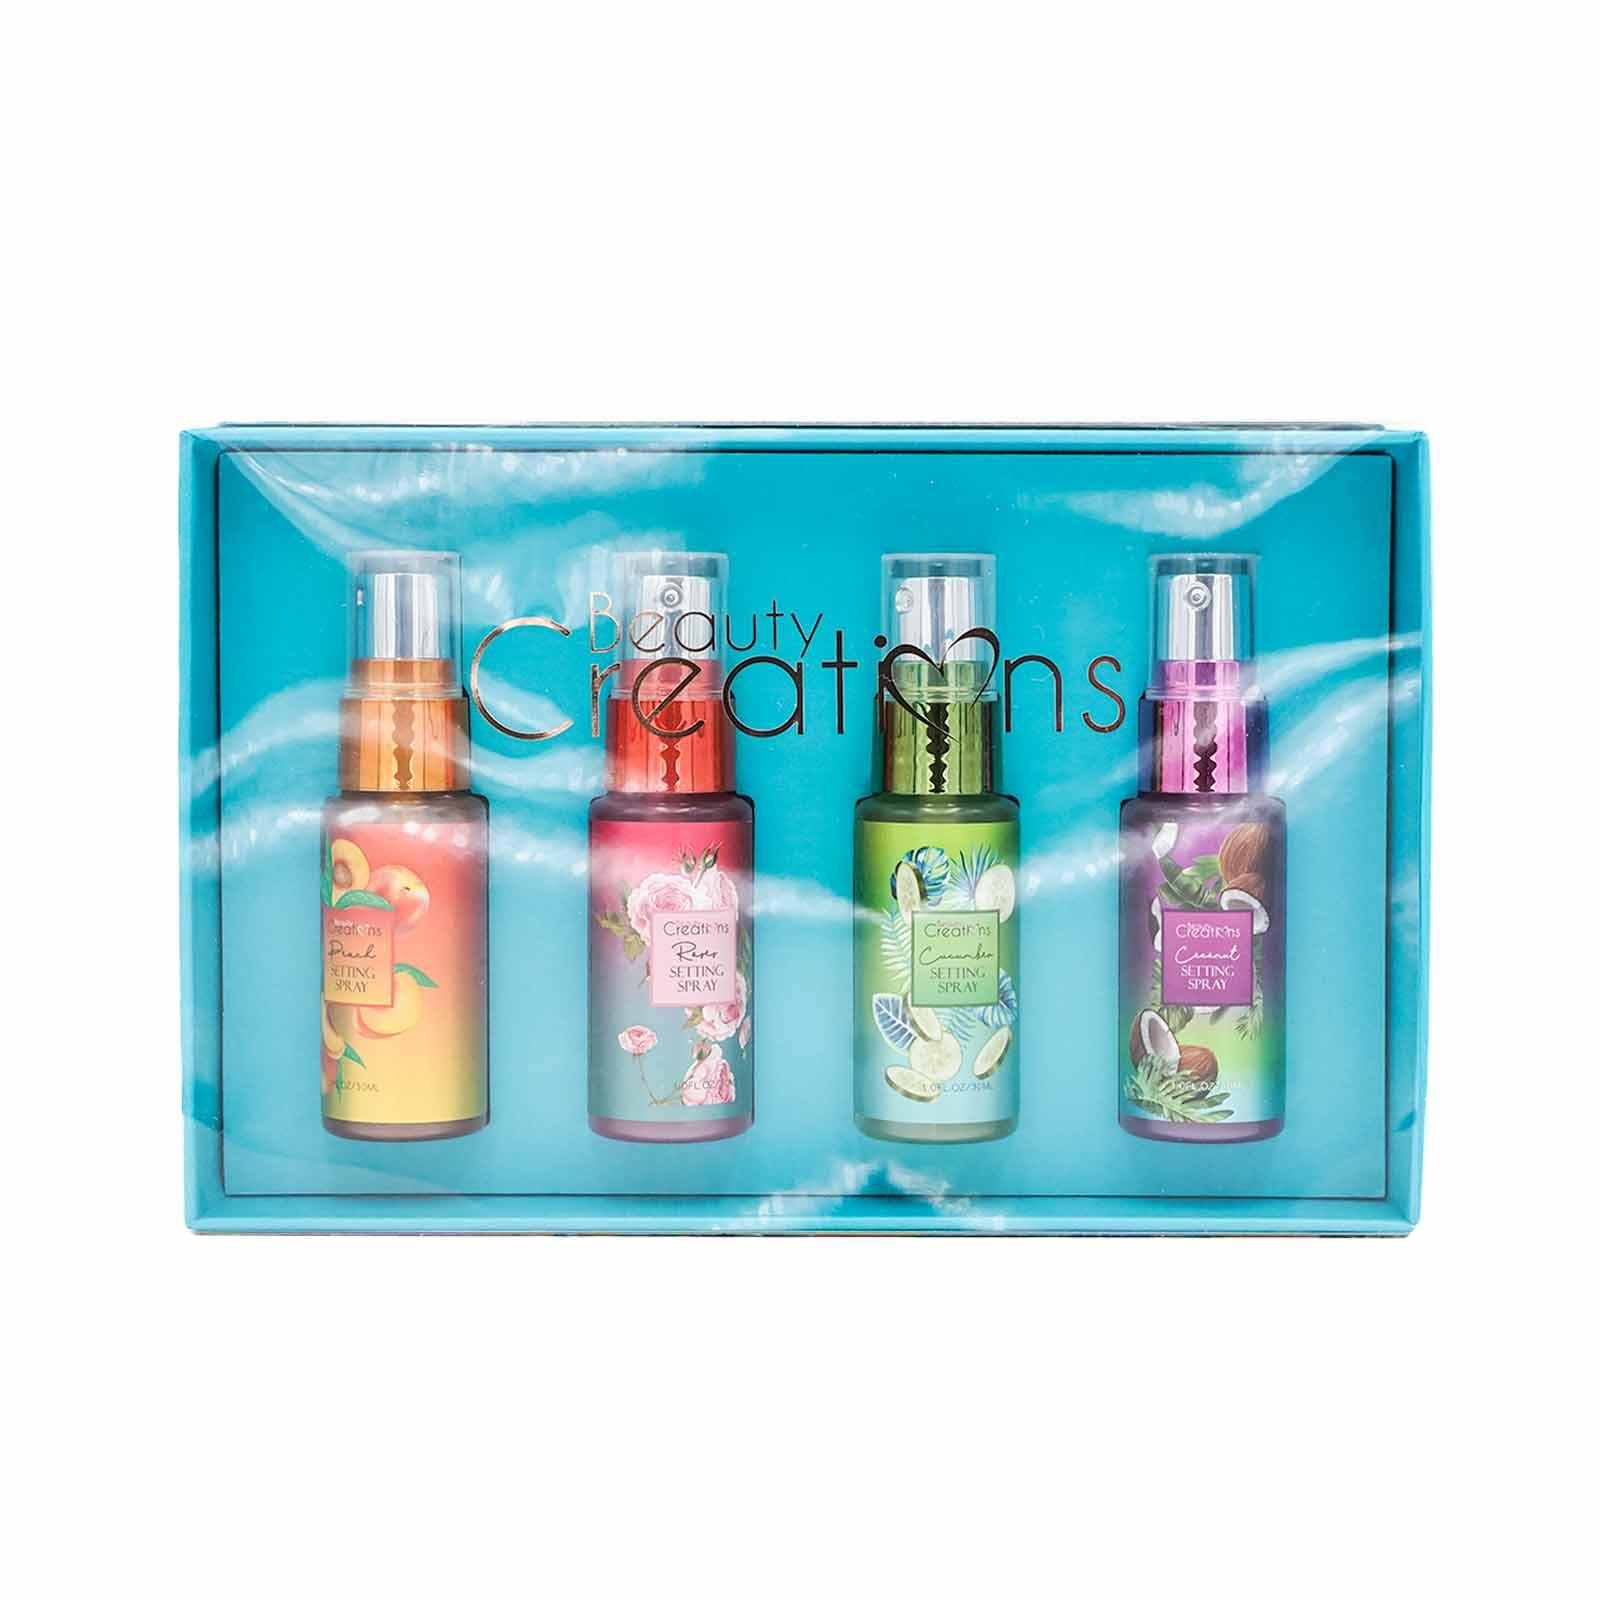 BEAUTY CREATIONS HOLIDAY SET SETTING SPRAY 1- PEACH, ROSE, CUCUMBER, COCONUT- SPS MINI 1 (6/cs)